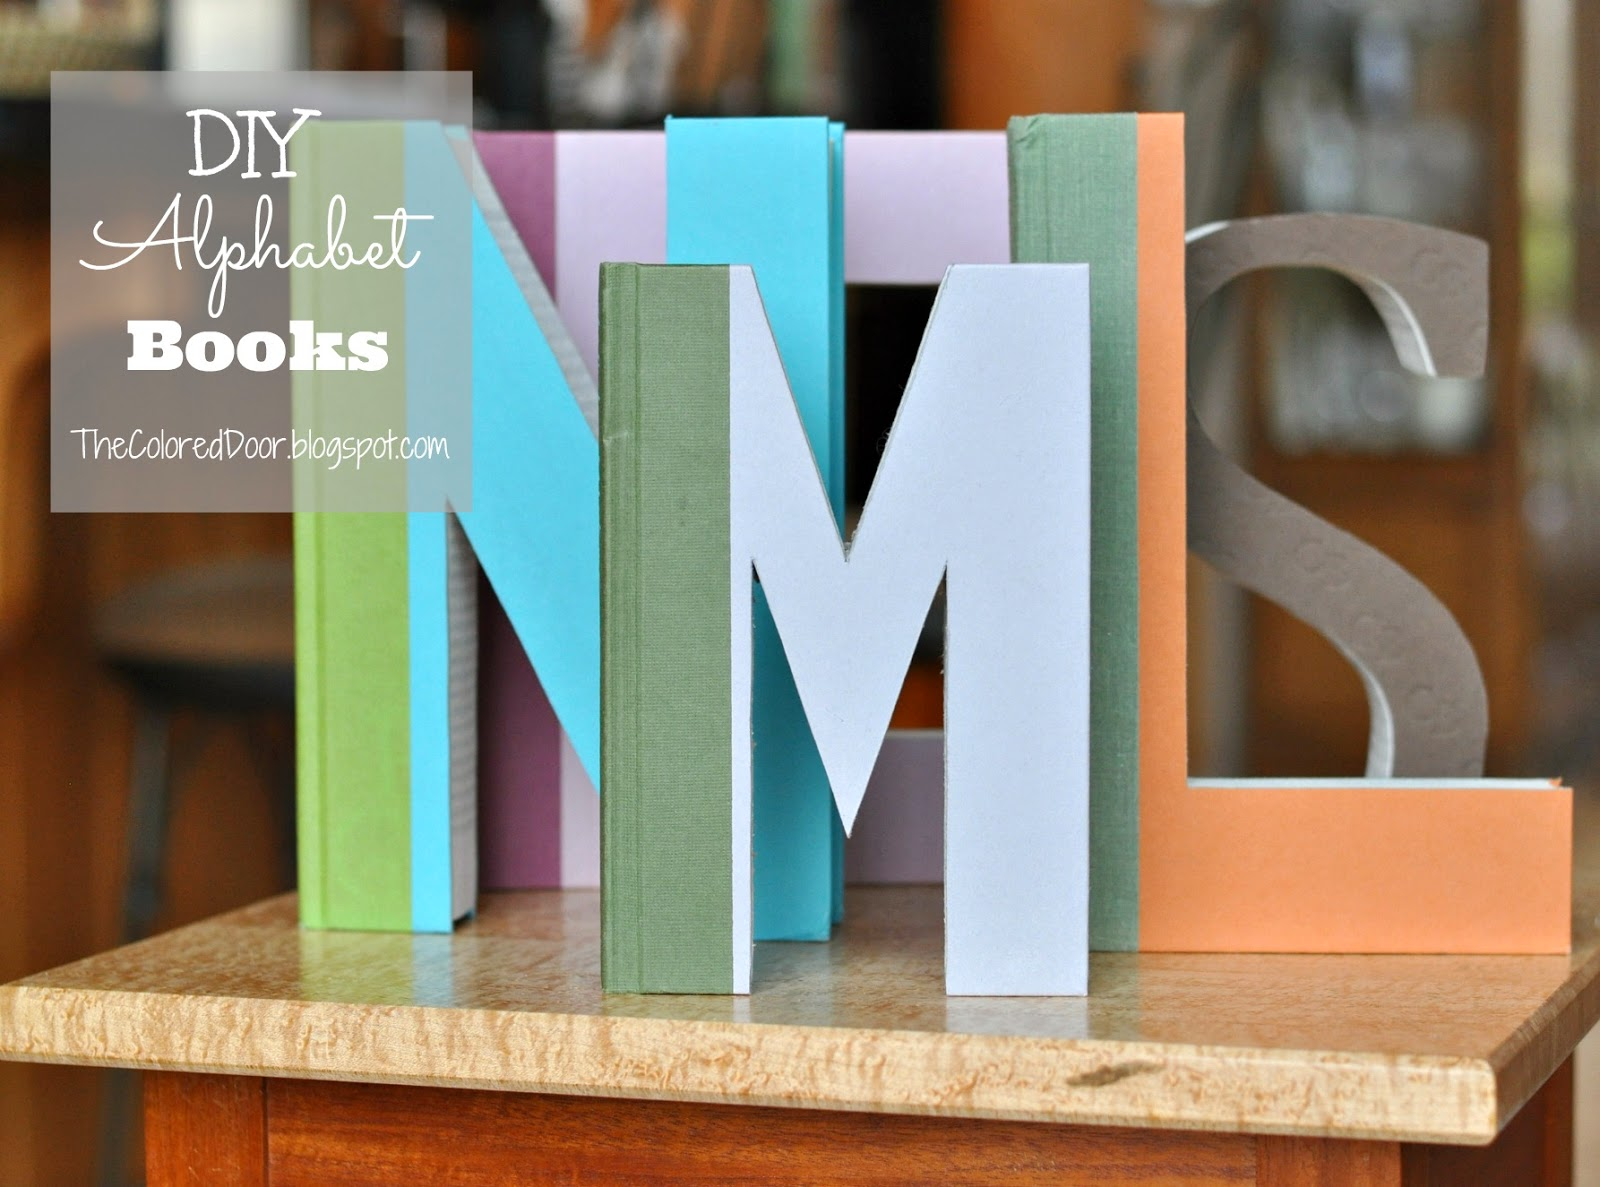 DIY Alphabet books - The Colored Door